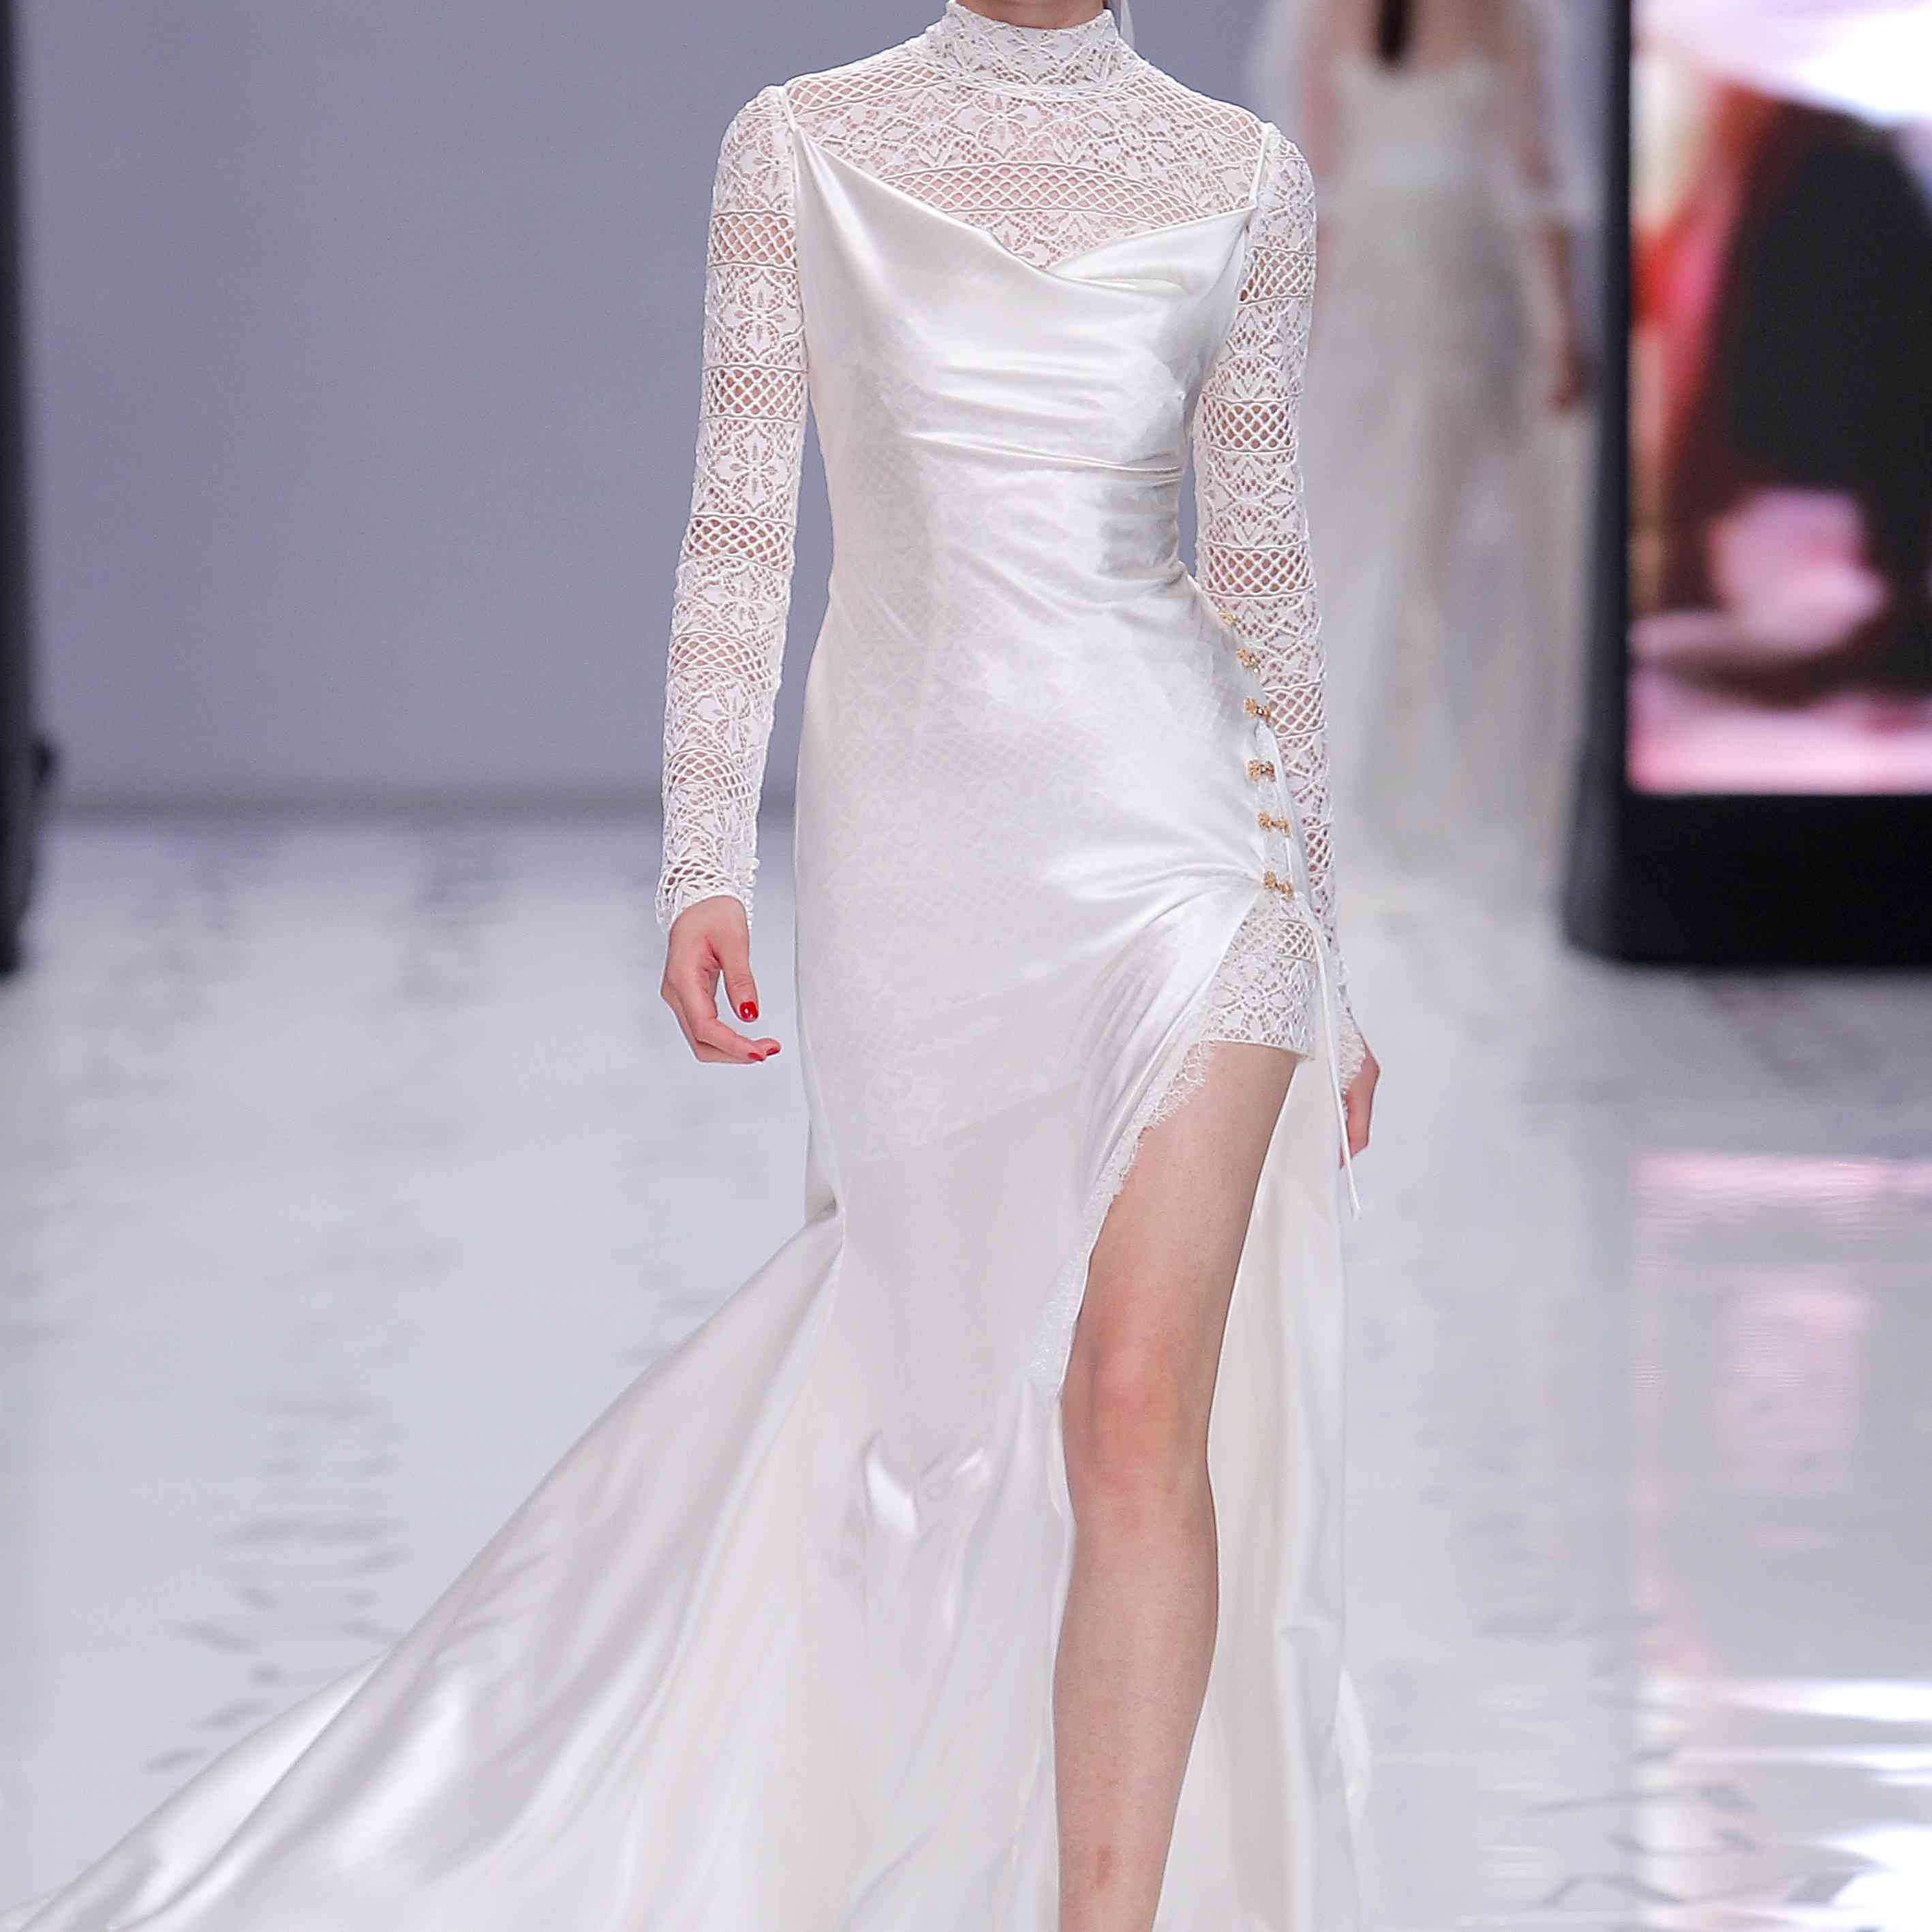 Model in a satin mermaid gown with a high front slit over a mock-neck long-sleeved lace mini dress